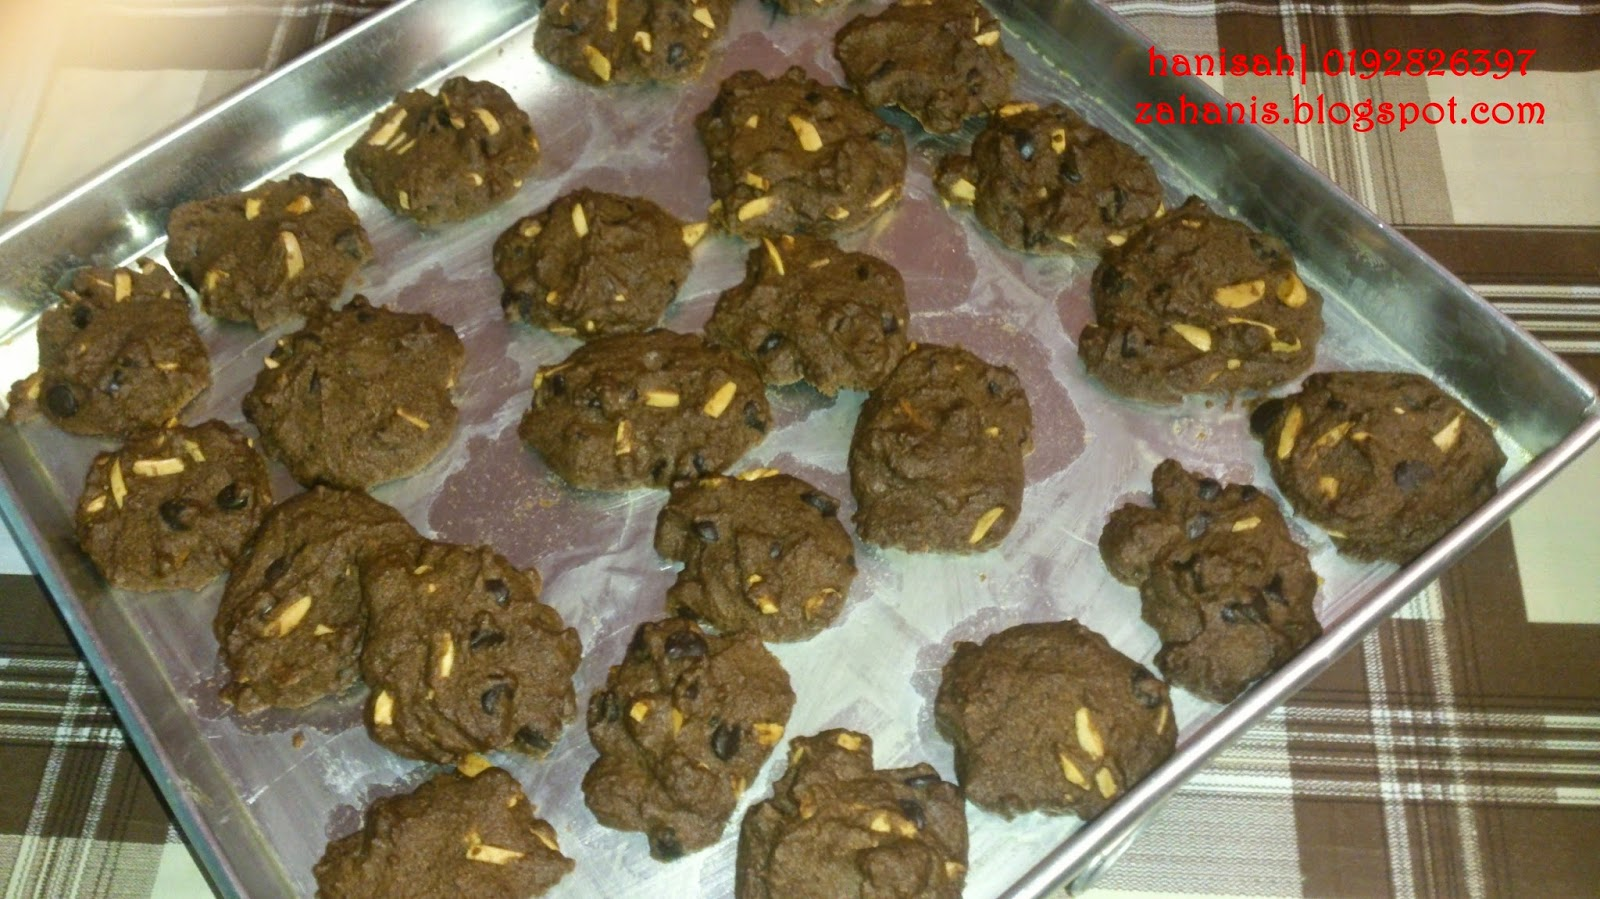 chocholate chips cookies kerteh